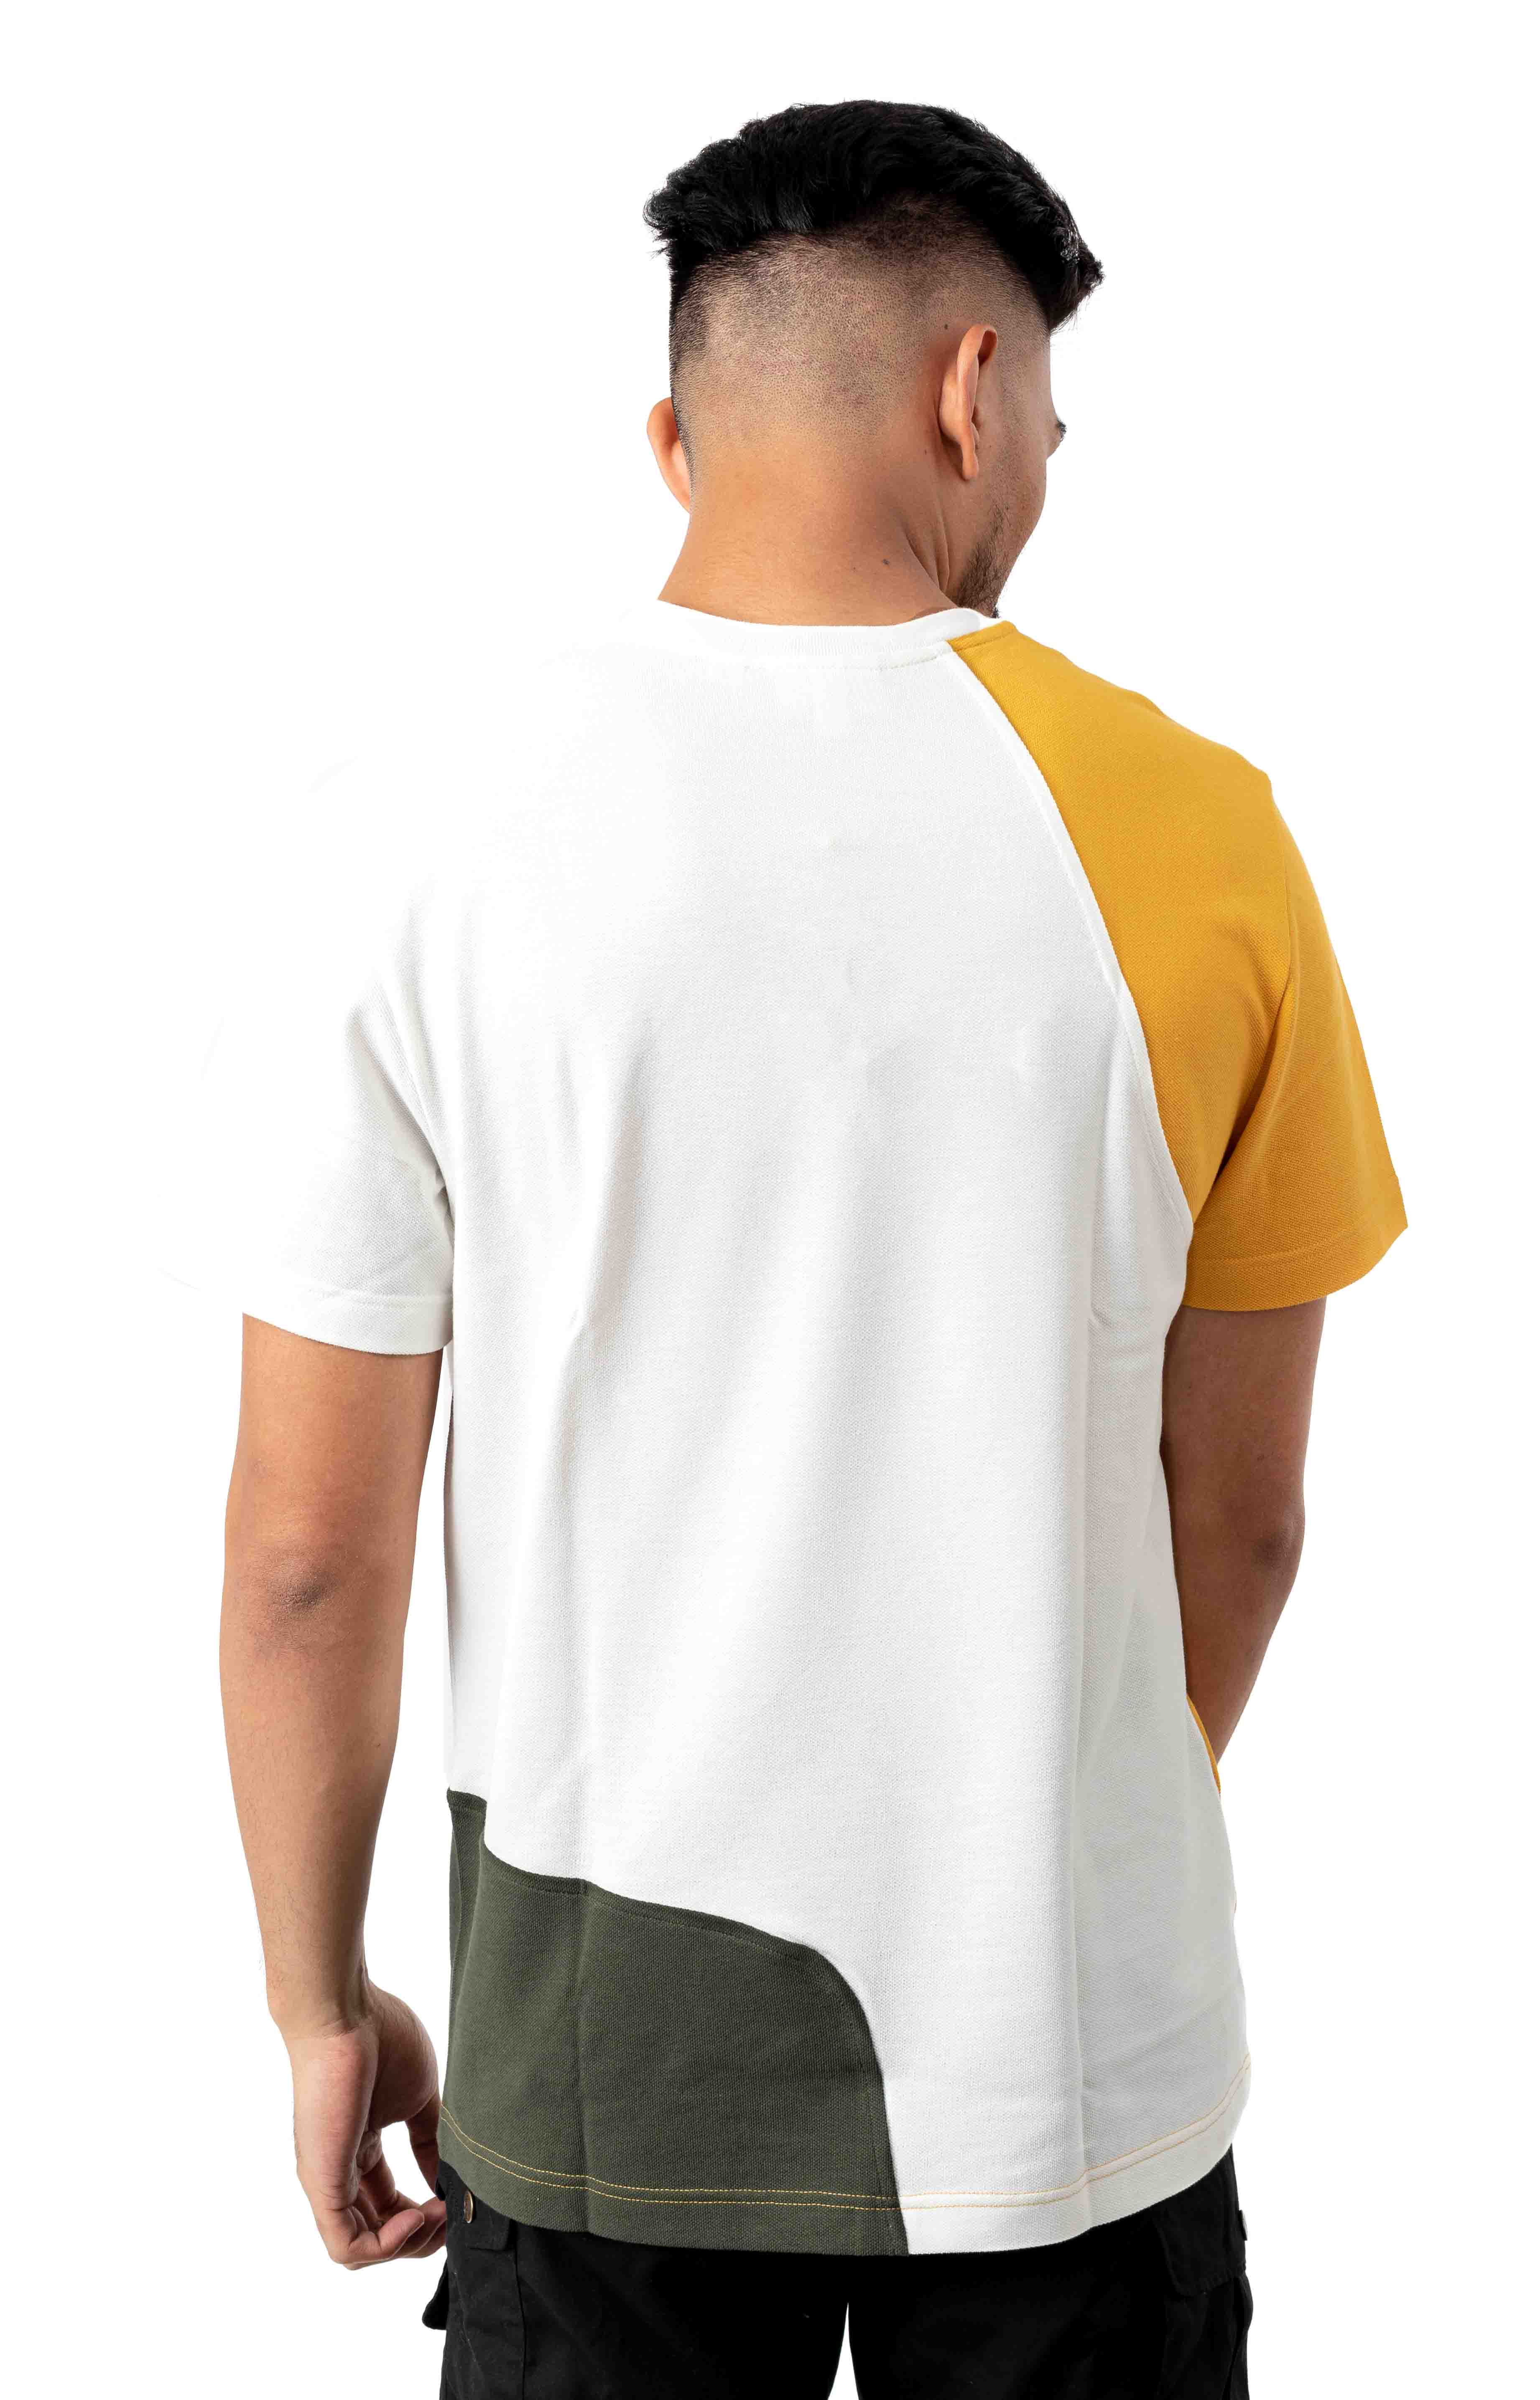 Crewneck Color-Blocked Thermoregulating Piqué T-Shirt - Yellow/Khaki/Green/White 3